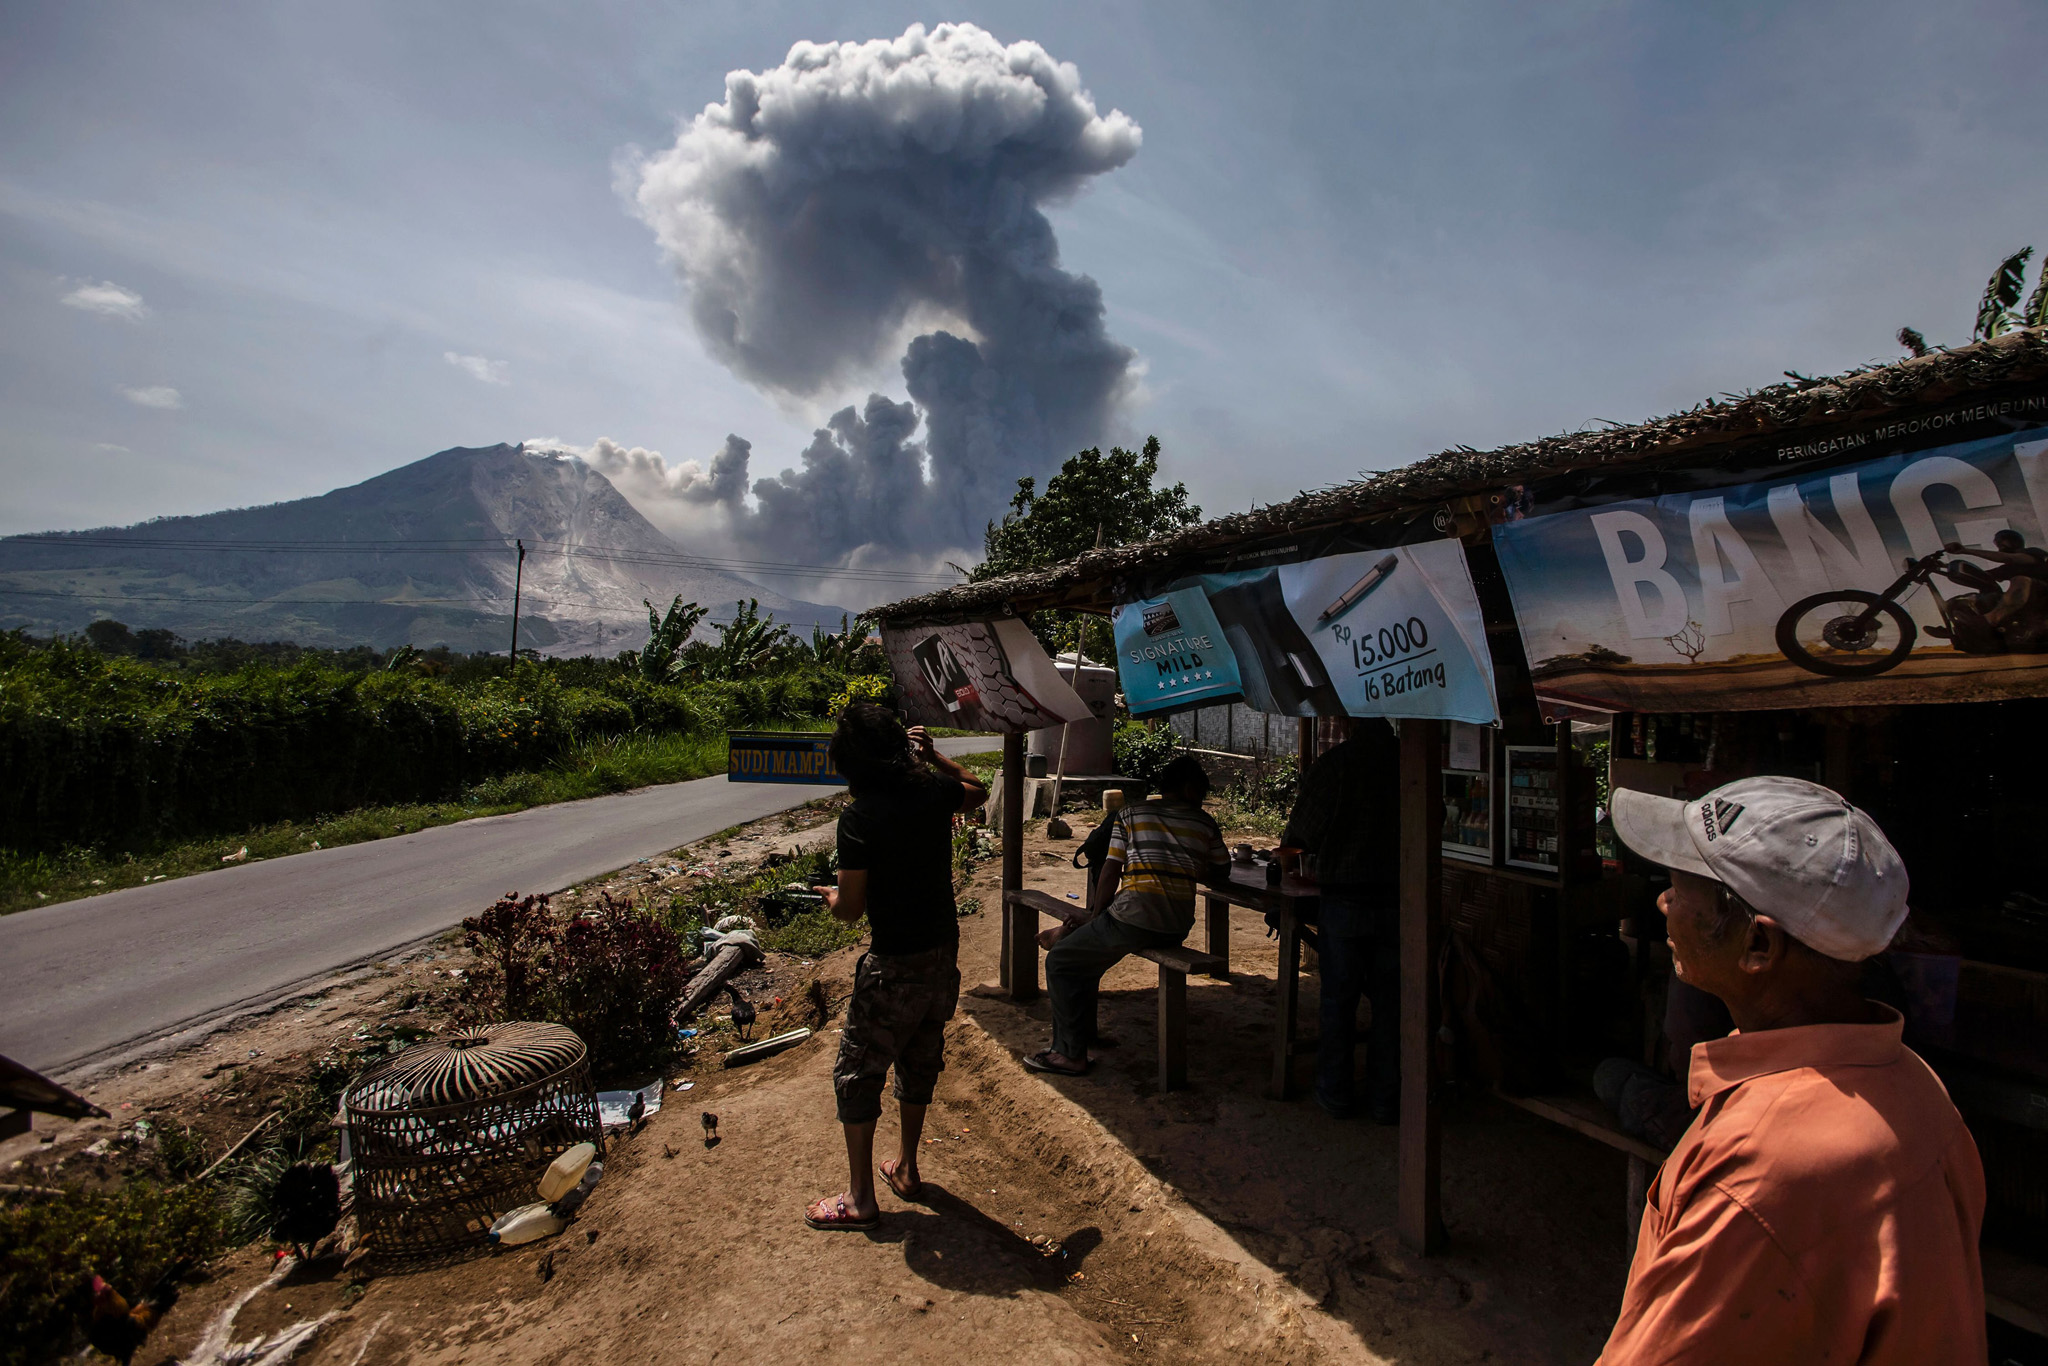 Indonesian residents look at the Mount Sinabung volcano as it spews volcanic ash near the Tiga Pancur village in Karo, North Sumatra